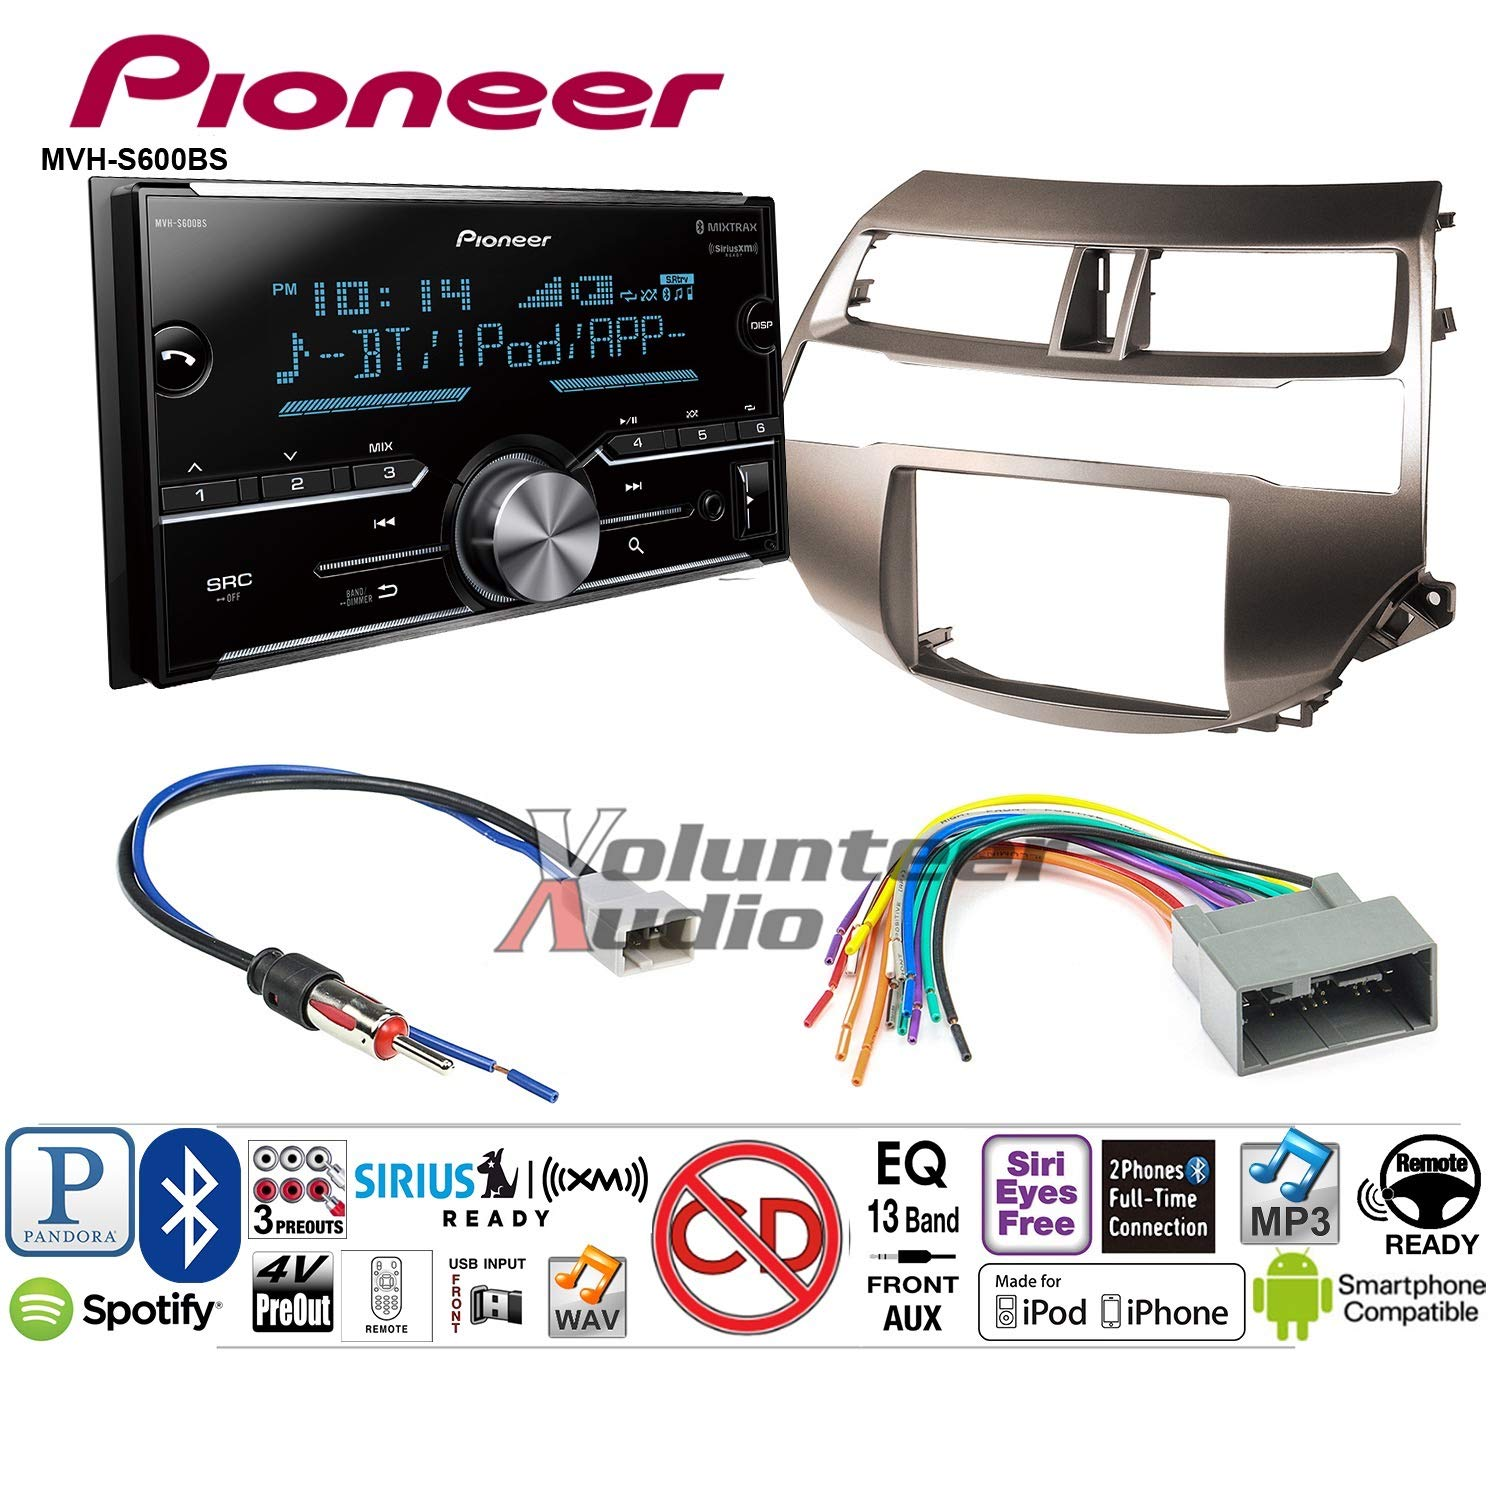 Volunteer Audio Pioneer MVH-S600BS Double Din Radio Install Kit with Bluetooth USB/AUX Fits 2008-2012 Honda Accord (Gun Metallic Taupe)